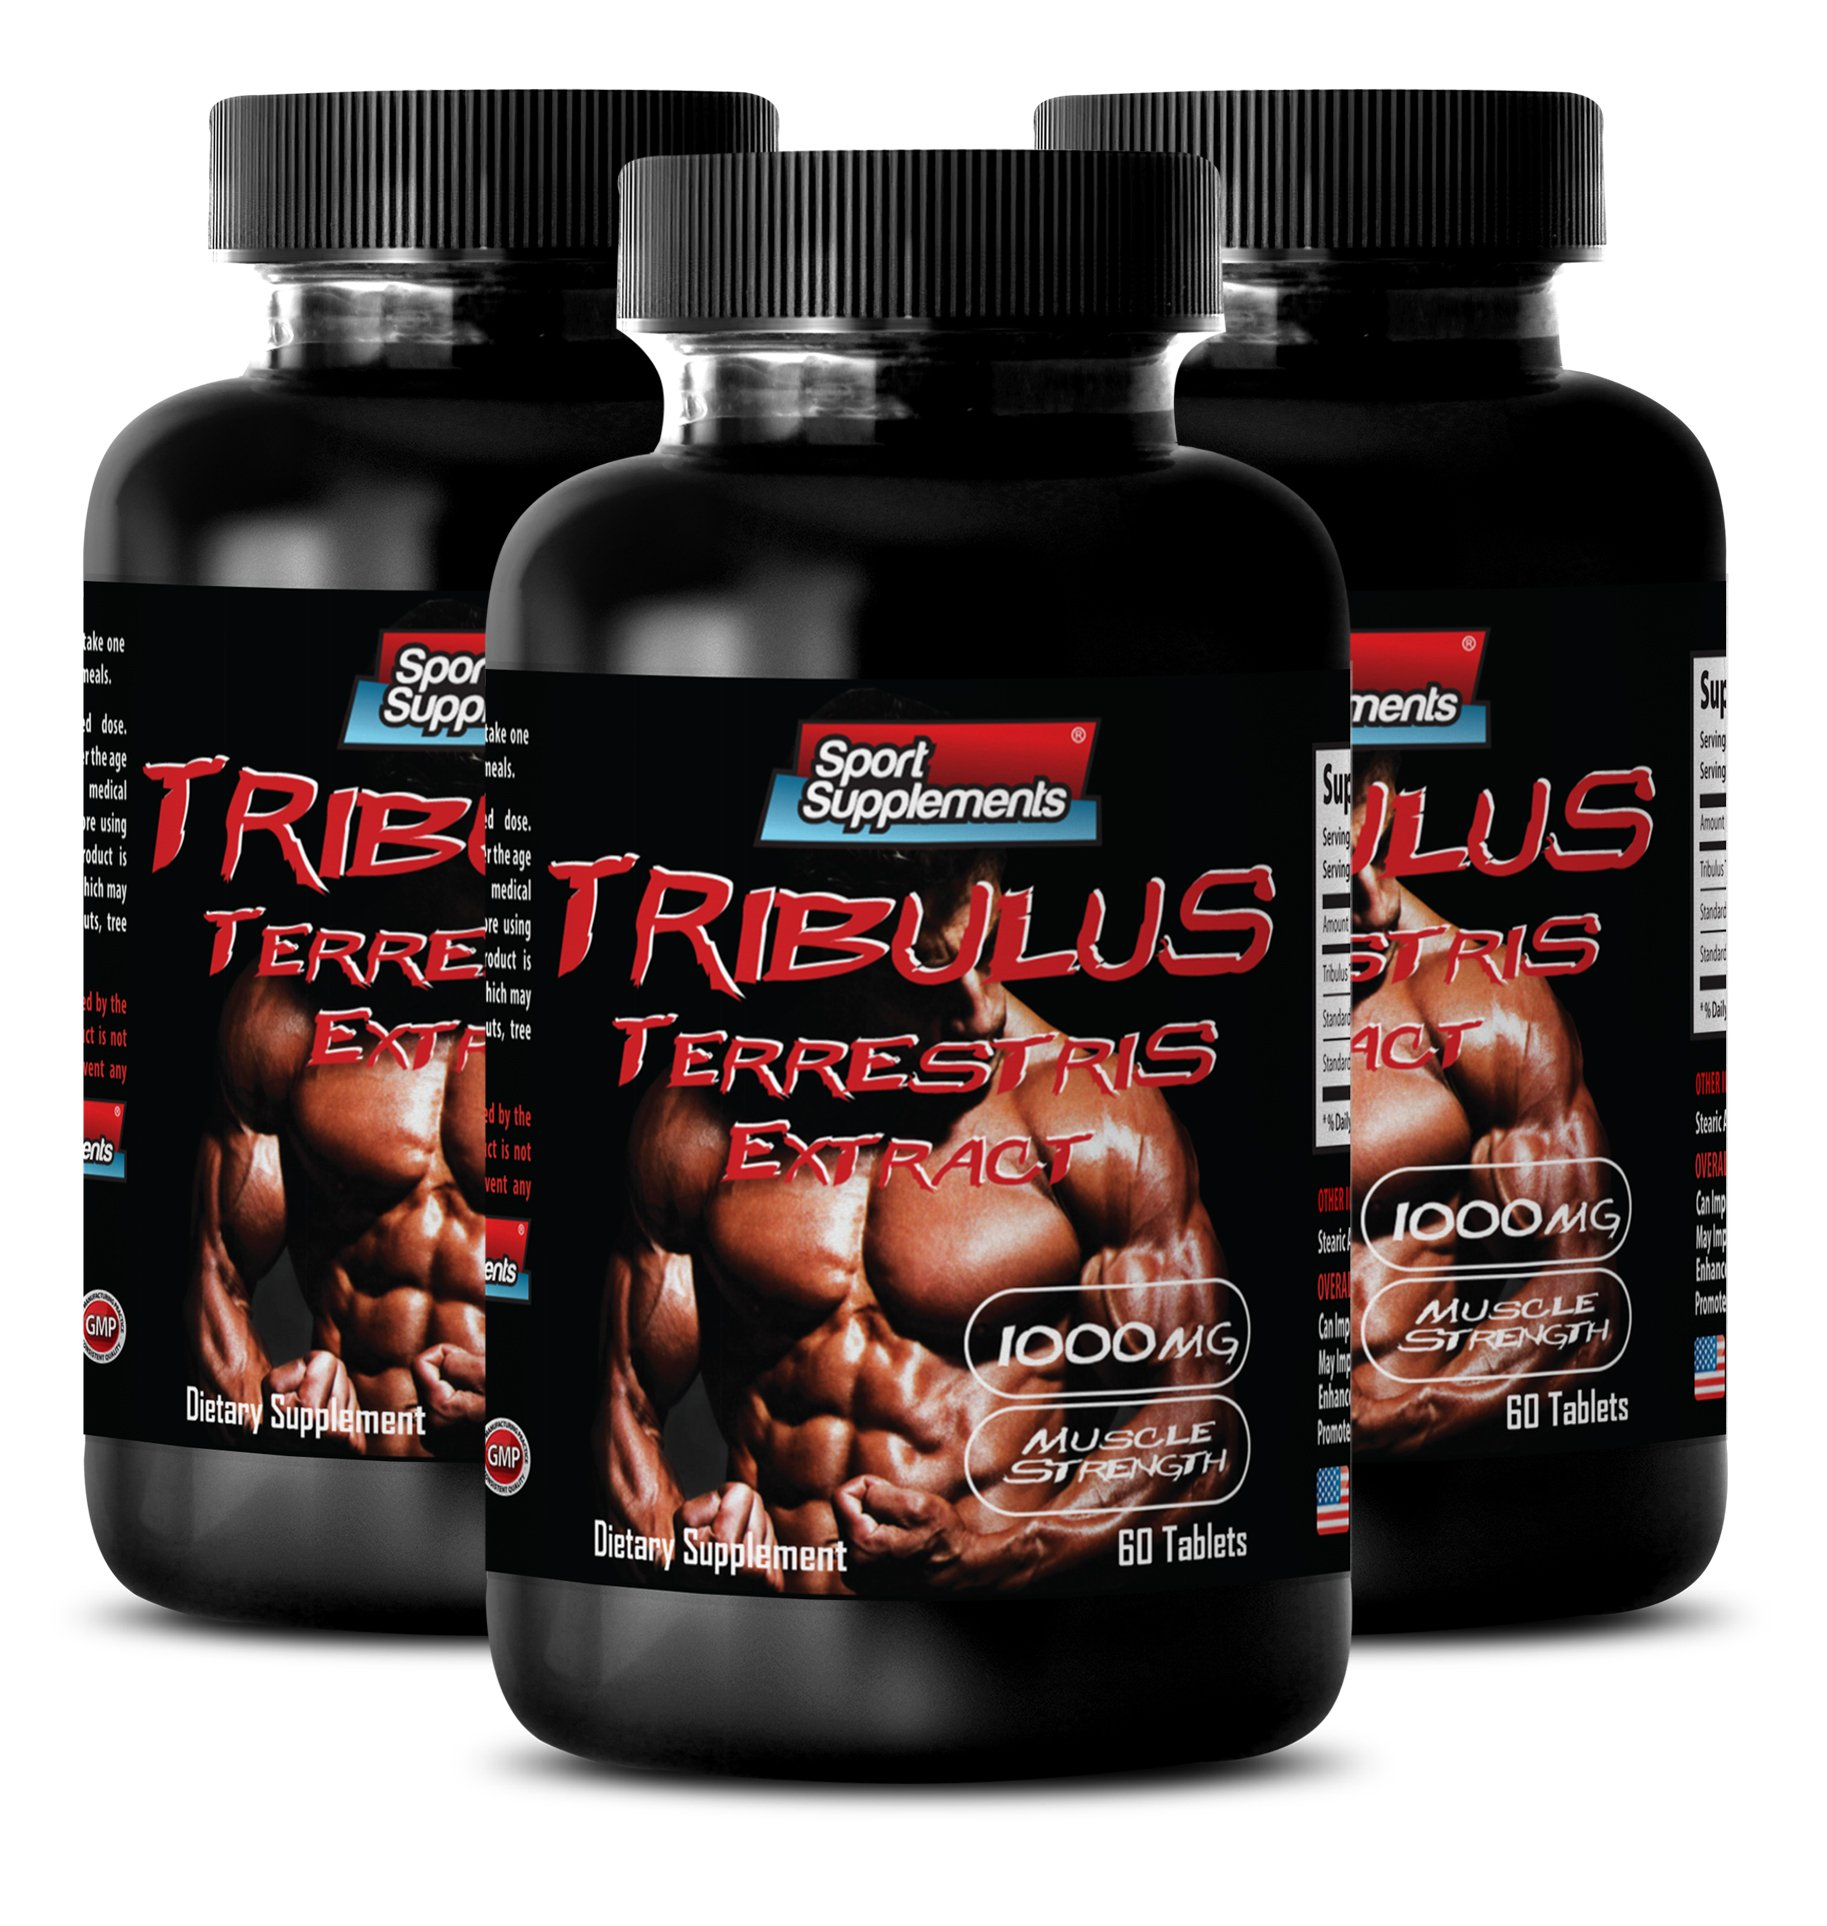 Male enchantment pills - TRIBULUS TERRESTRIS EXTRACT 1000mg with Standardized 400mg Natural Saponins - Boost Testosterone Naturally - 3 Bottles 180 Tablets by Sport Supplements